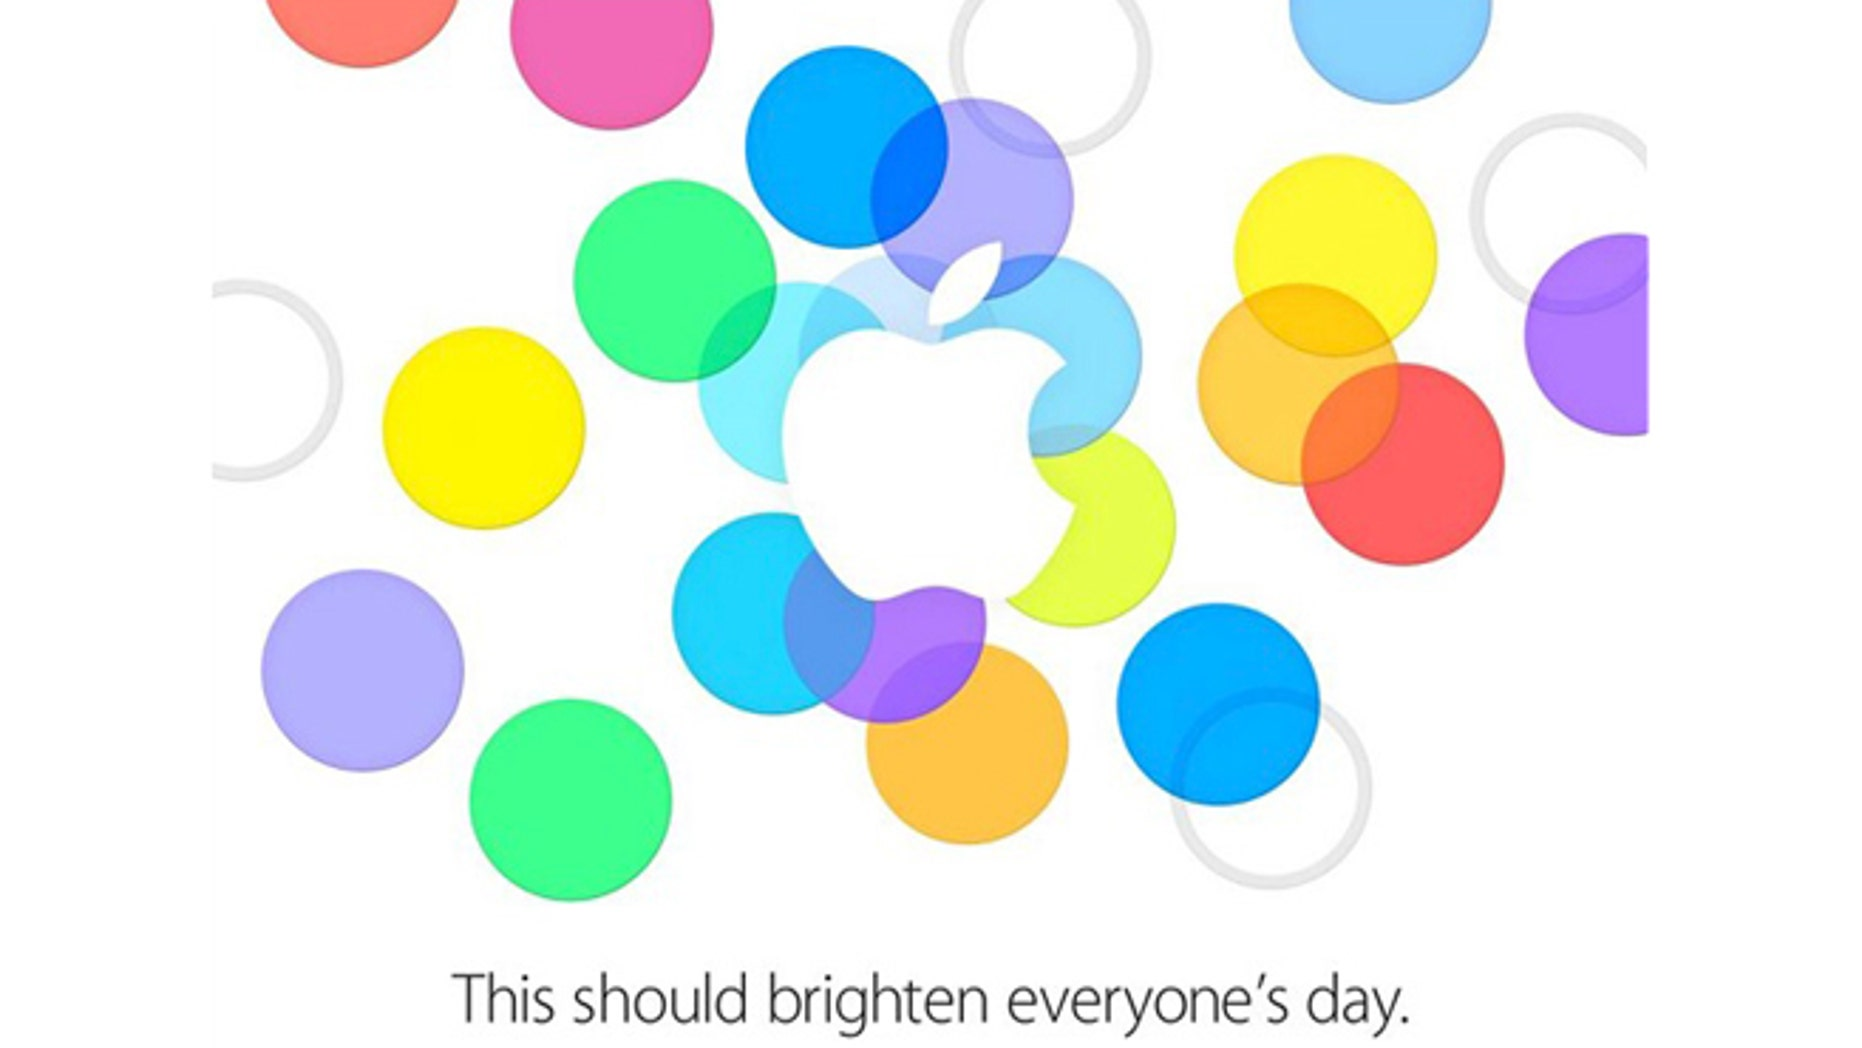 """Apple's invitation to their now confimred September 10 launch date reads, """"This should brighten everyone's day."""""""